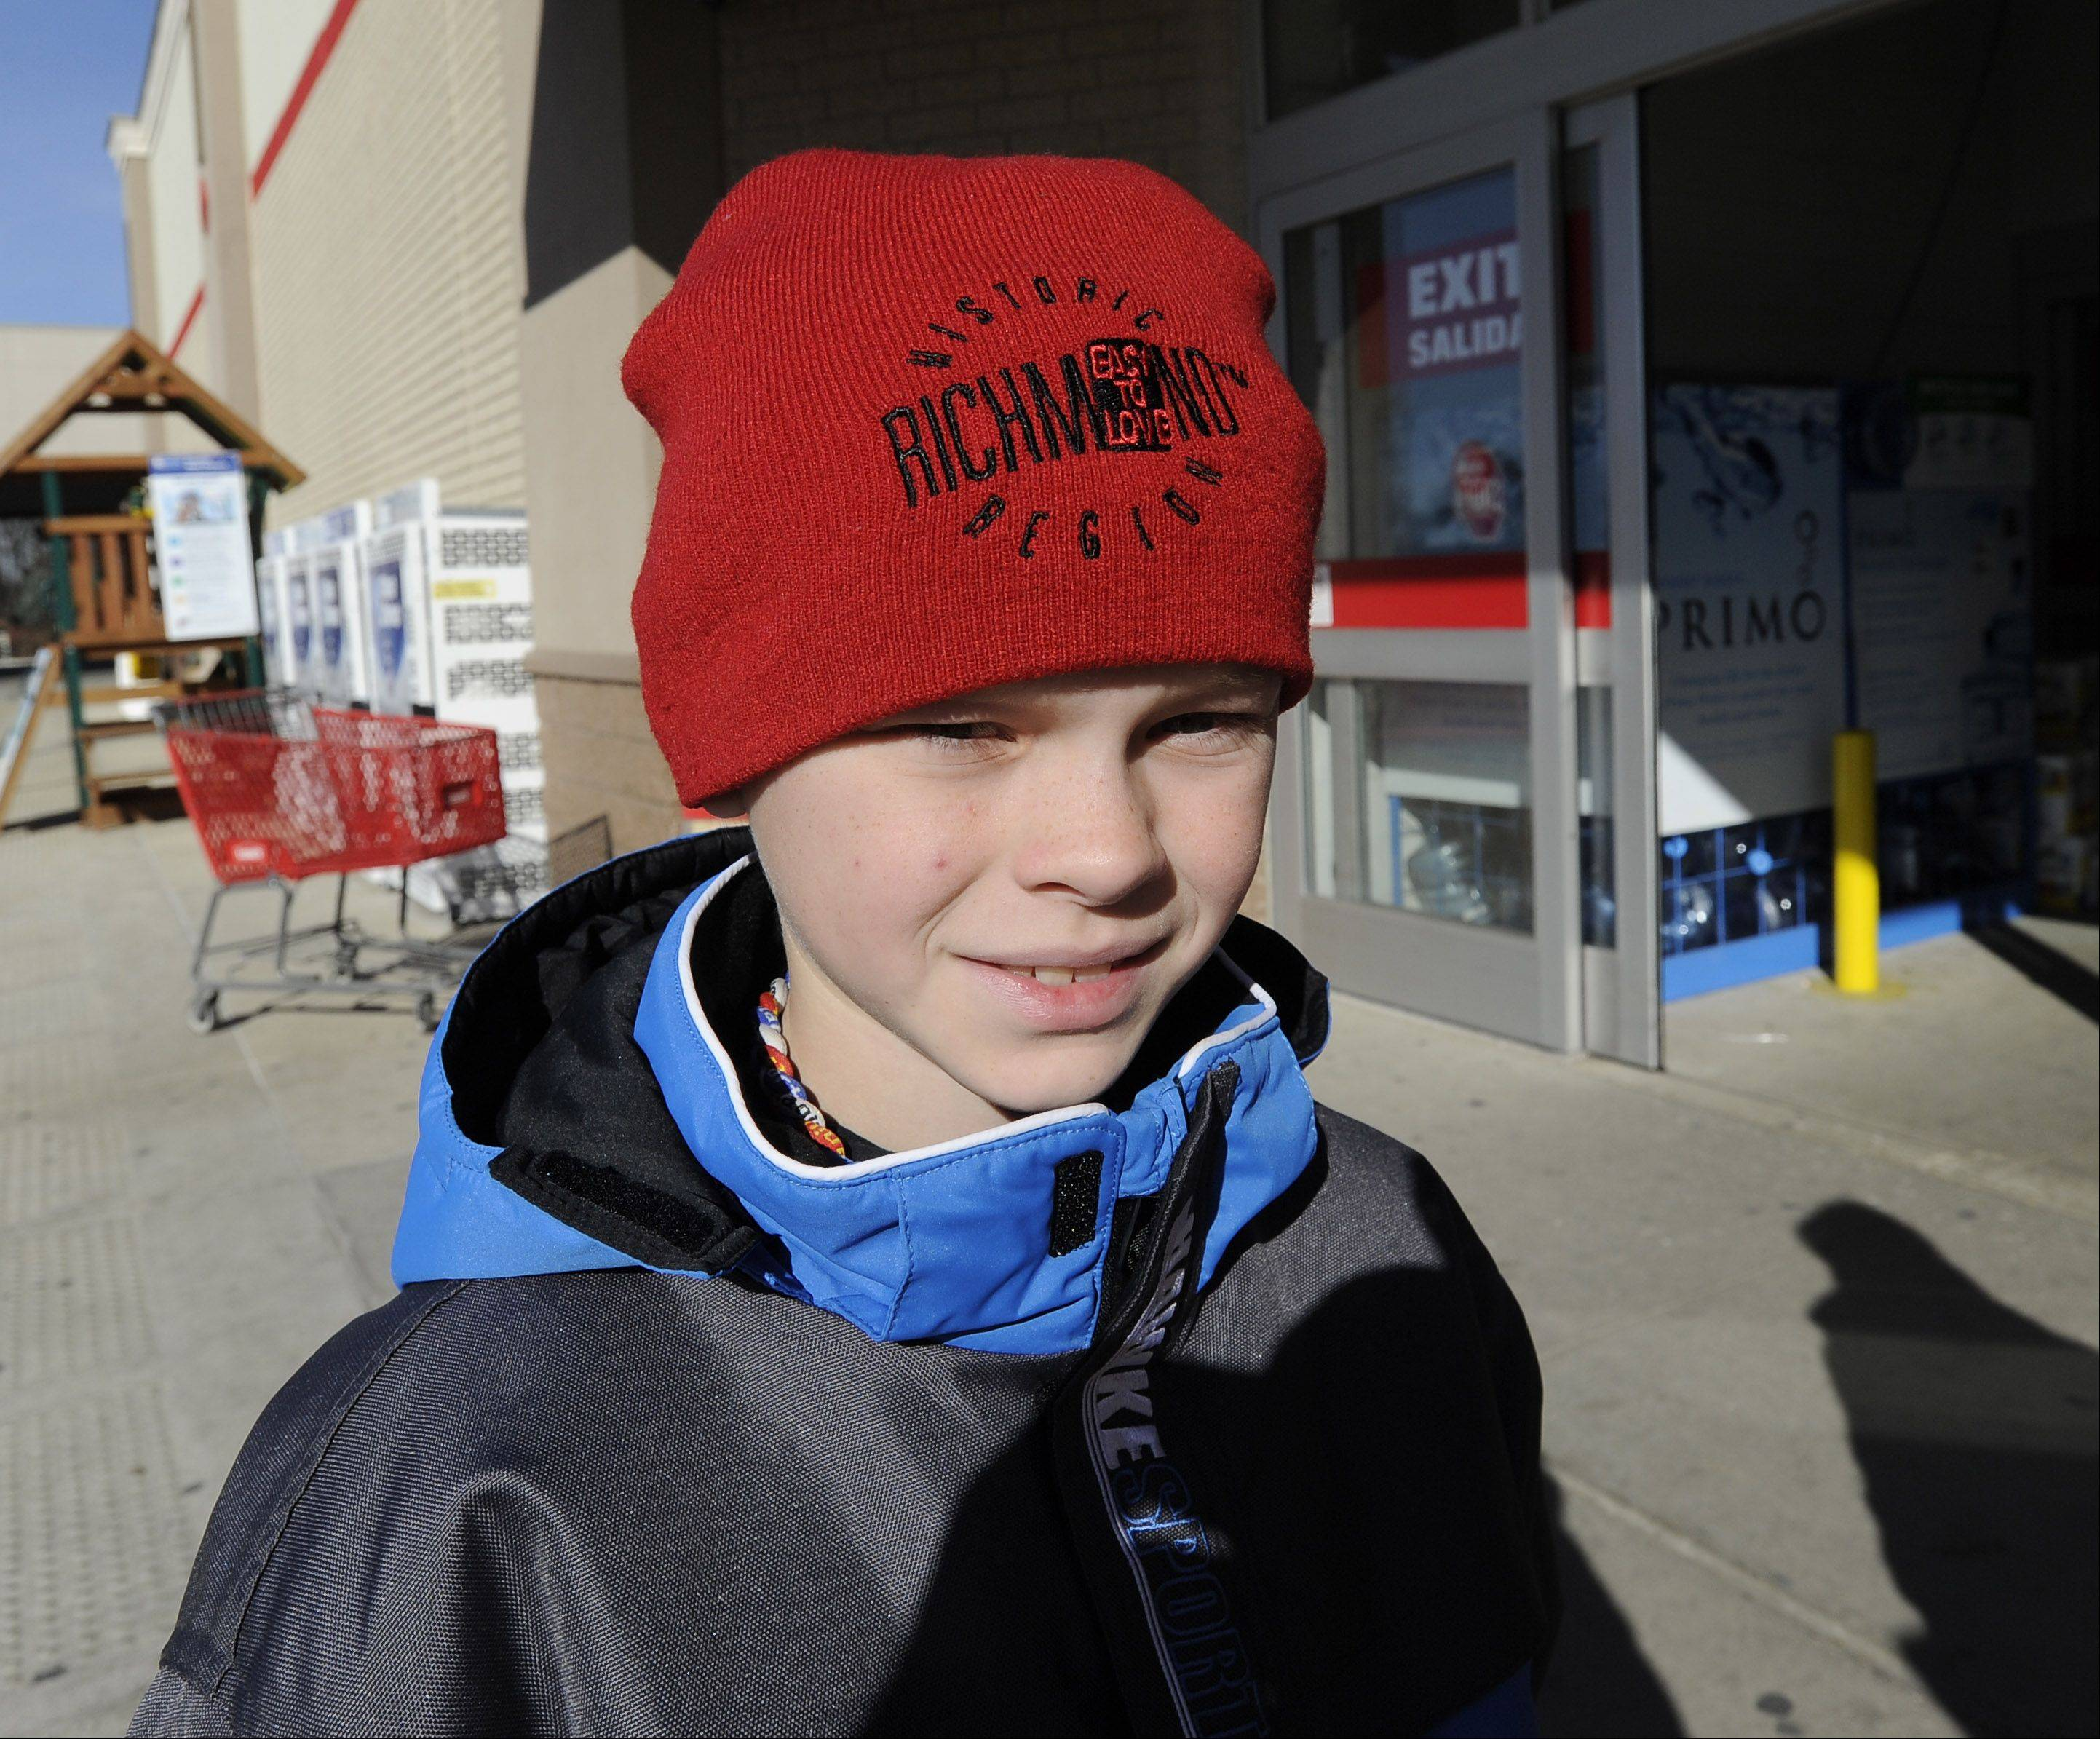 Blake Johnson, 10, of Arlington Heights